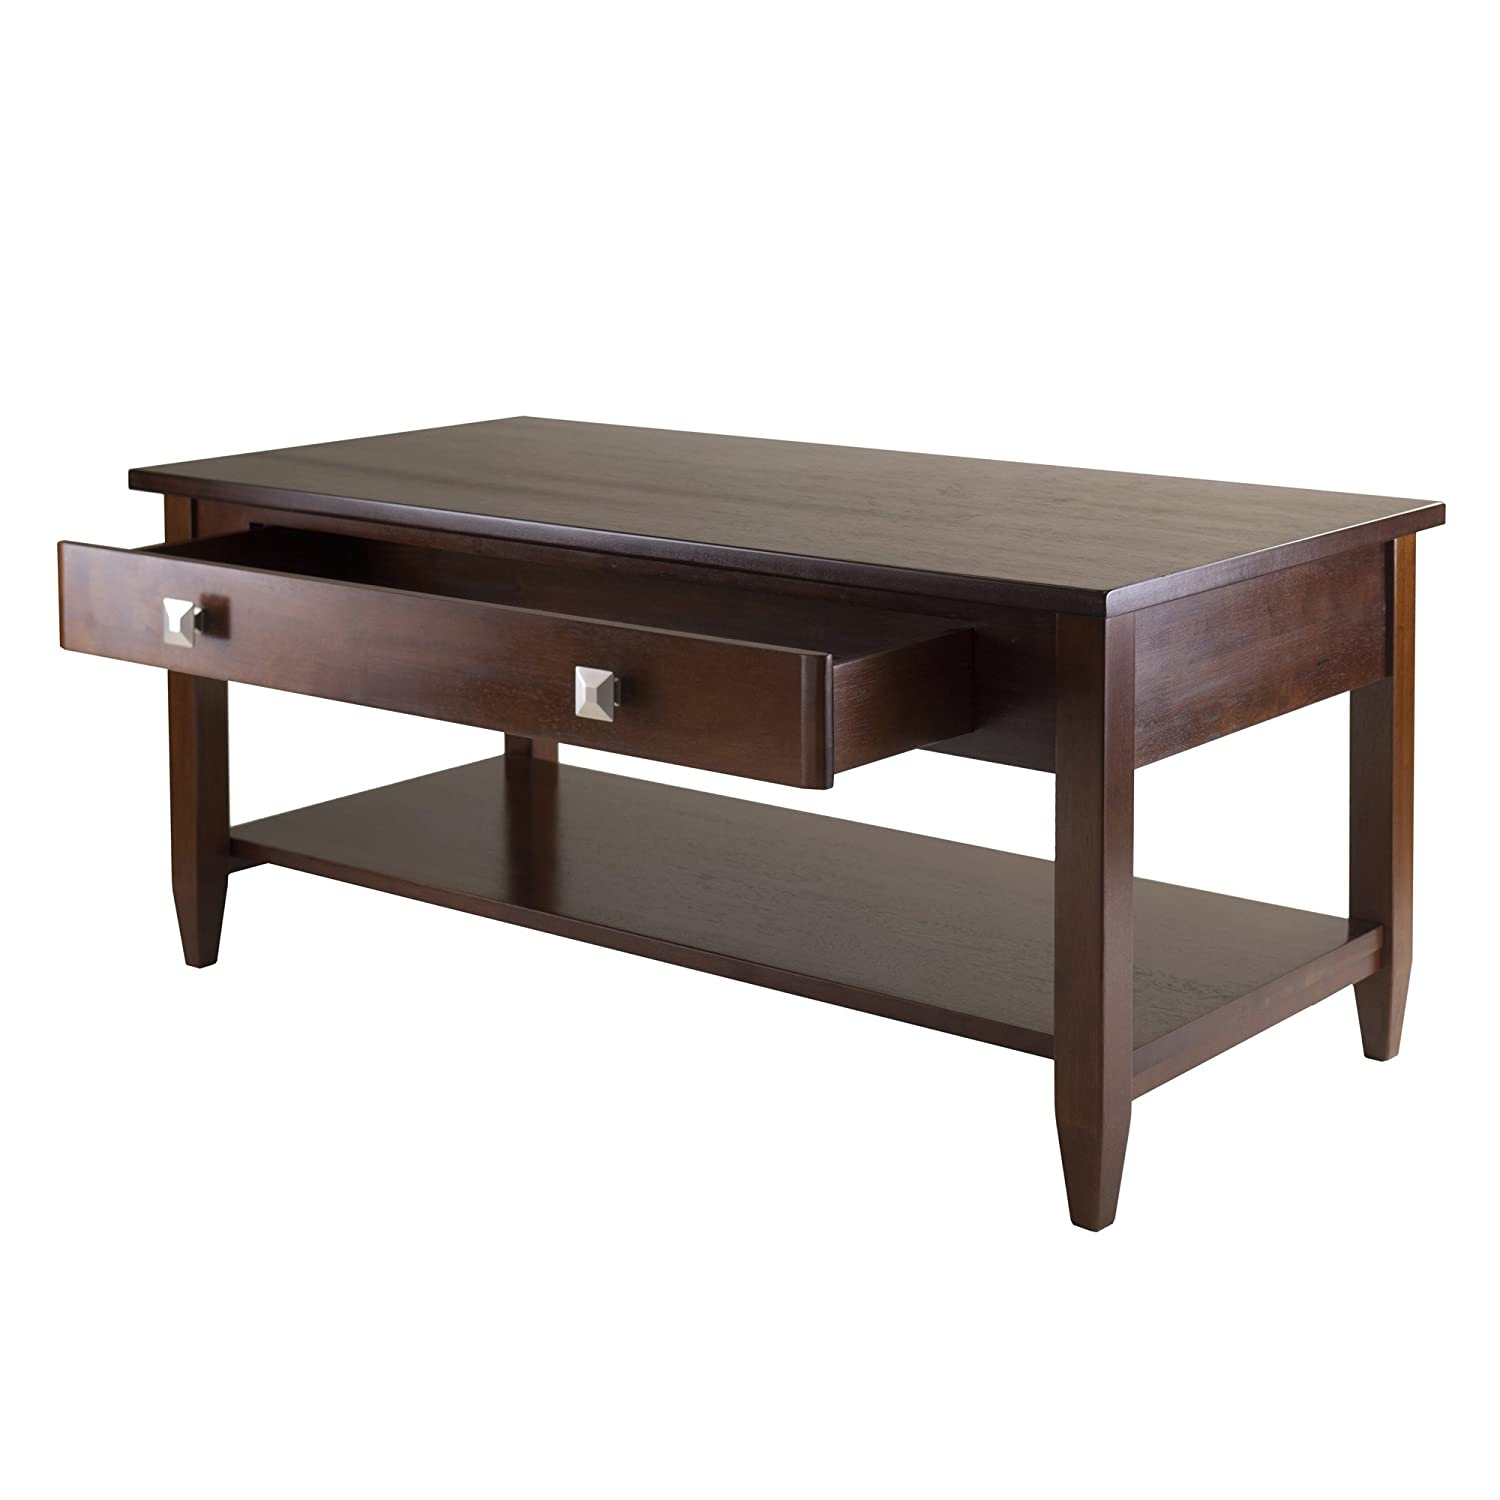 Amazoncom Winsome Richmond Coffee Table with Tapered Leg Kitchen